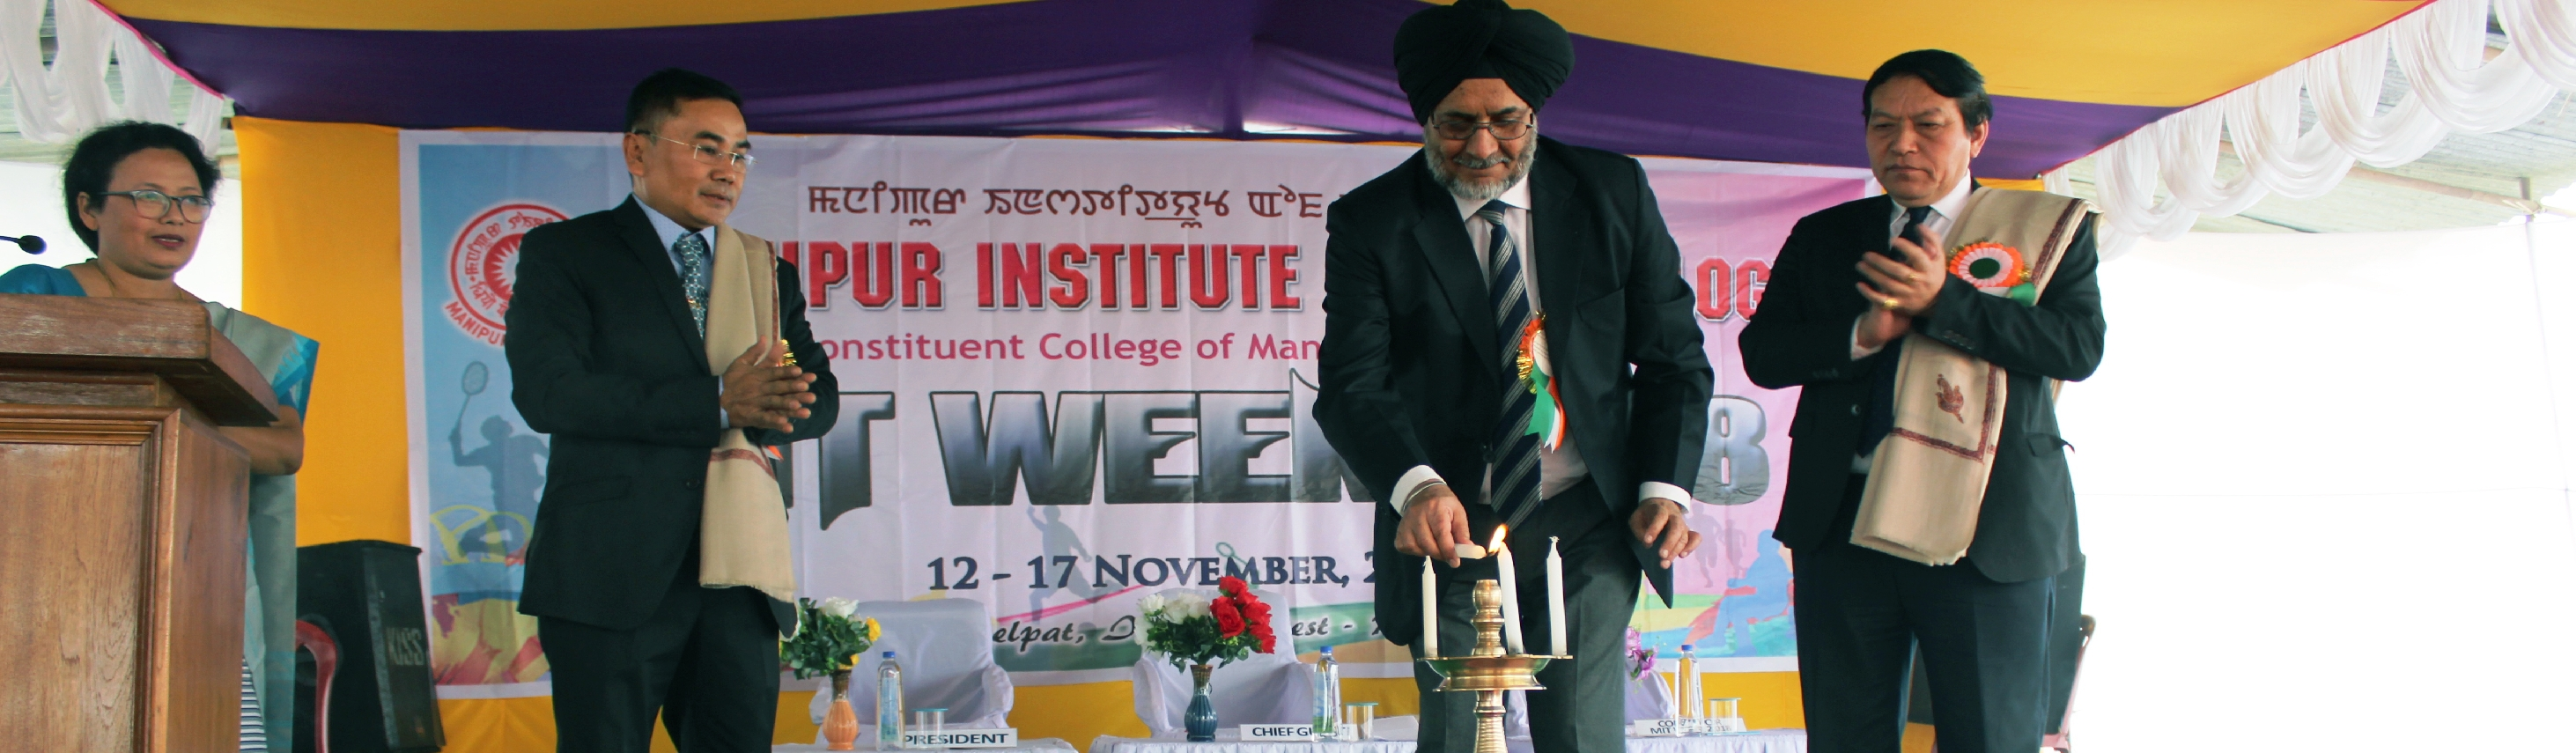 LIGHTING THE CANDLE BY SHRI JARNAIL SINGH, ADMINISTRATOR, MANIPUR UNIVERSITY AT THE VALEDICTORY FUNCTION OF MIT WEEK 2018 ON 17th NOV, 2018